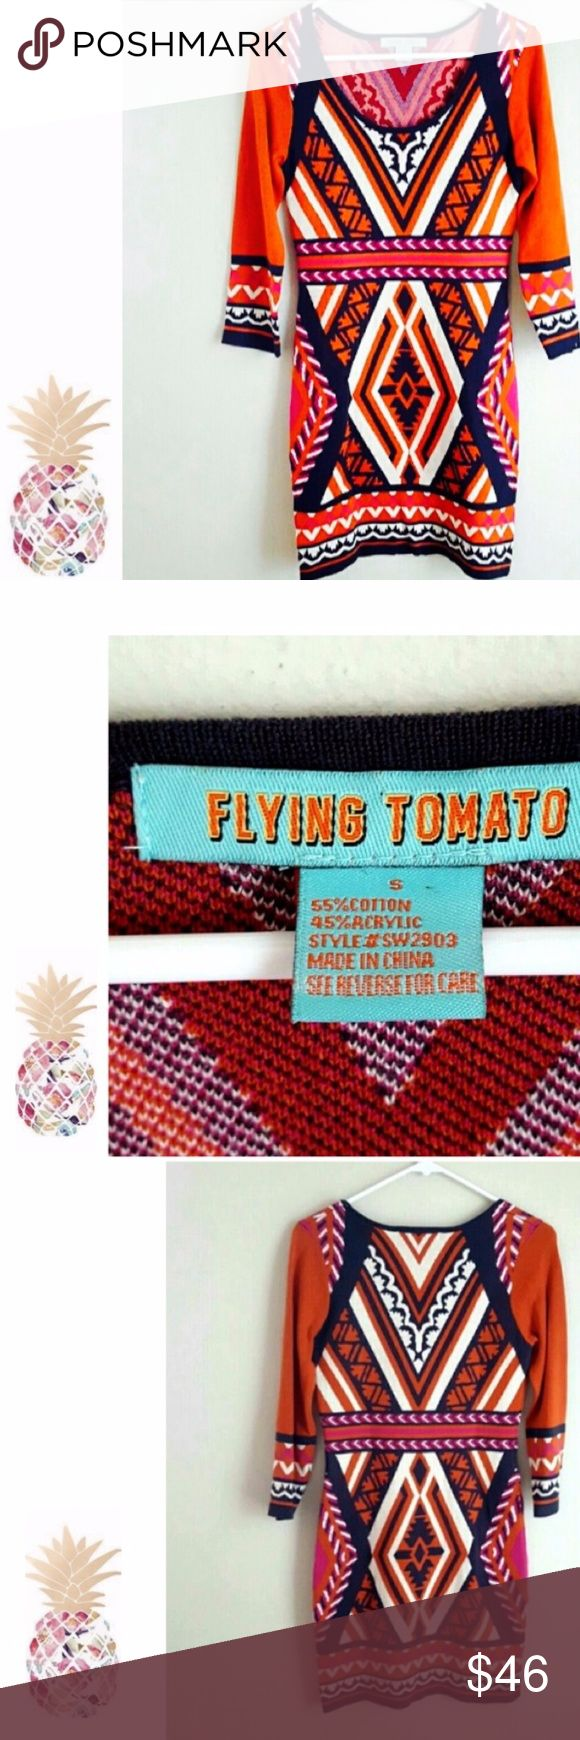 Flying Tomato Sweater Dress, Sz. Small, Aztec Prin Gently worn and in Excellent Condition!! Great Dress for this Fall/Winter Season. Size:  Small Casual Dress Polyester knit  Aztec pattern Knee-Length 3/4 Sleeves Multi-Color: Orange, Gray, Cream and Fuchsia Flying Tomato Dresses Mini